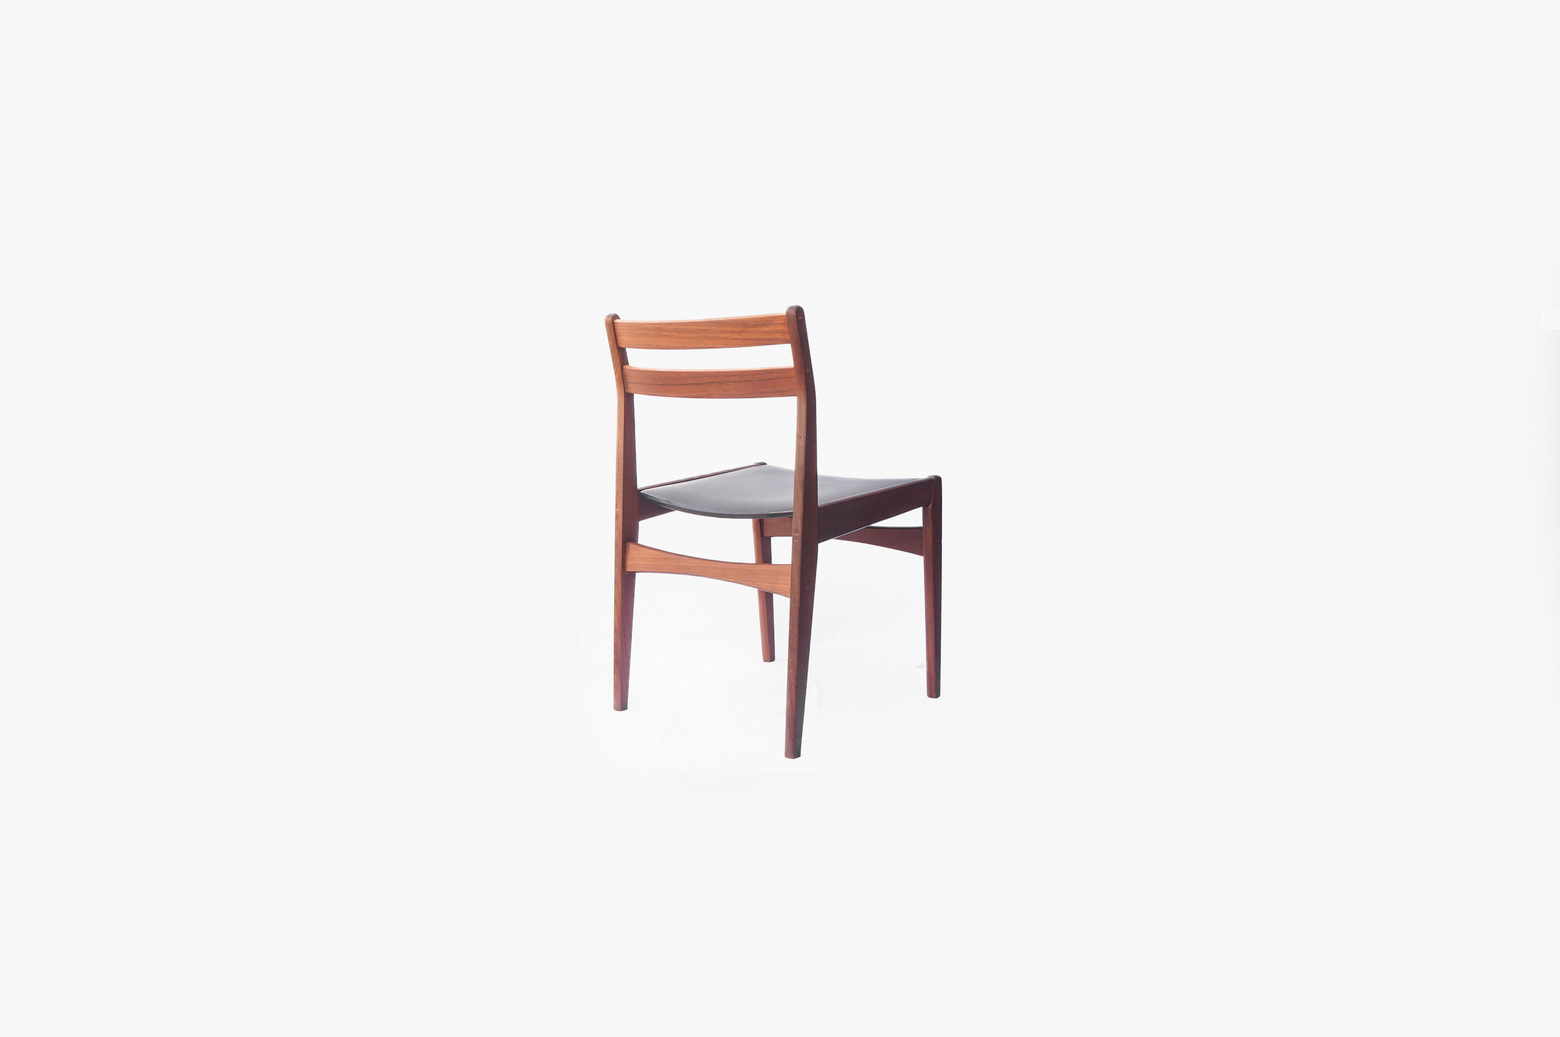 Danish Vintage Frem Røjle Dining Chair designed by Poul M. Volther/デンマーク ヴィンテージ フレムロジェ ダイニングチェア ポール・M・ヴォルター 2